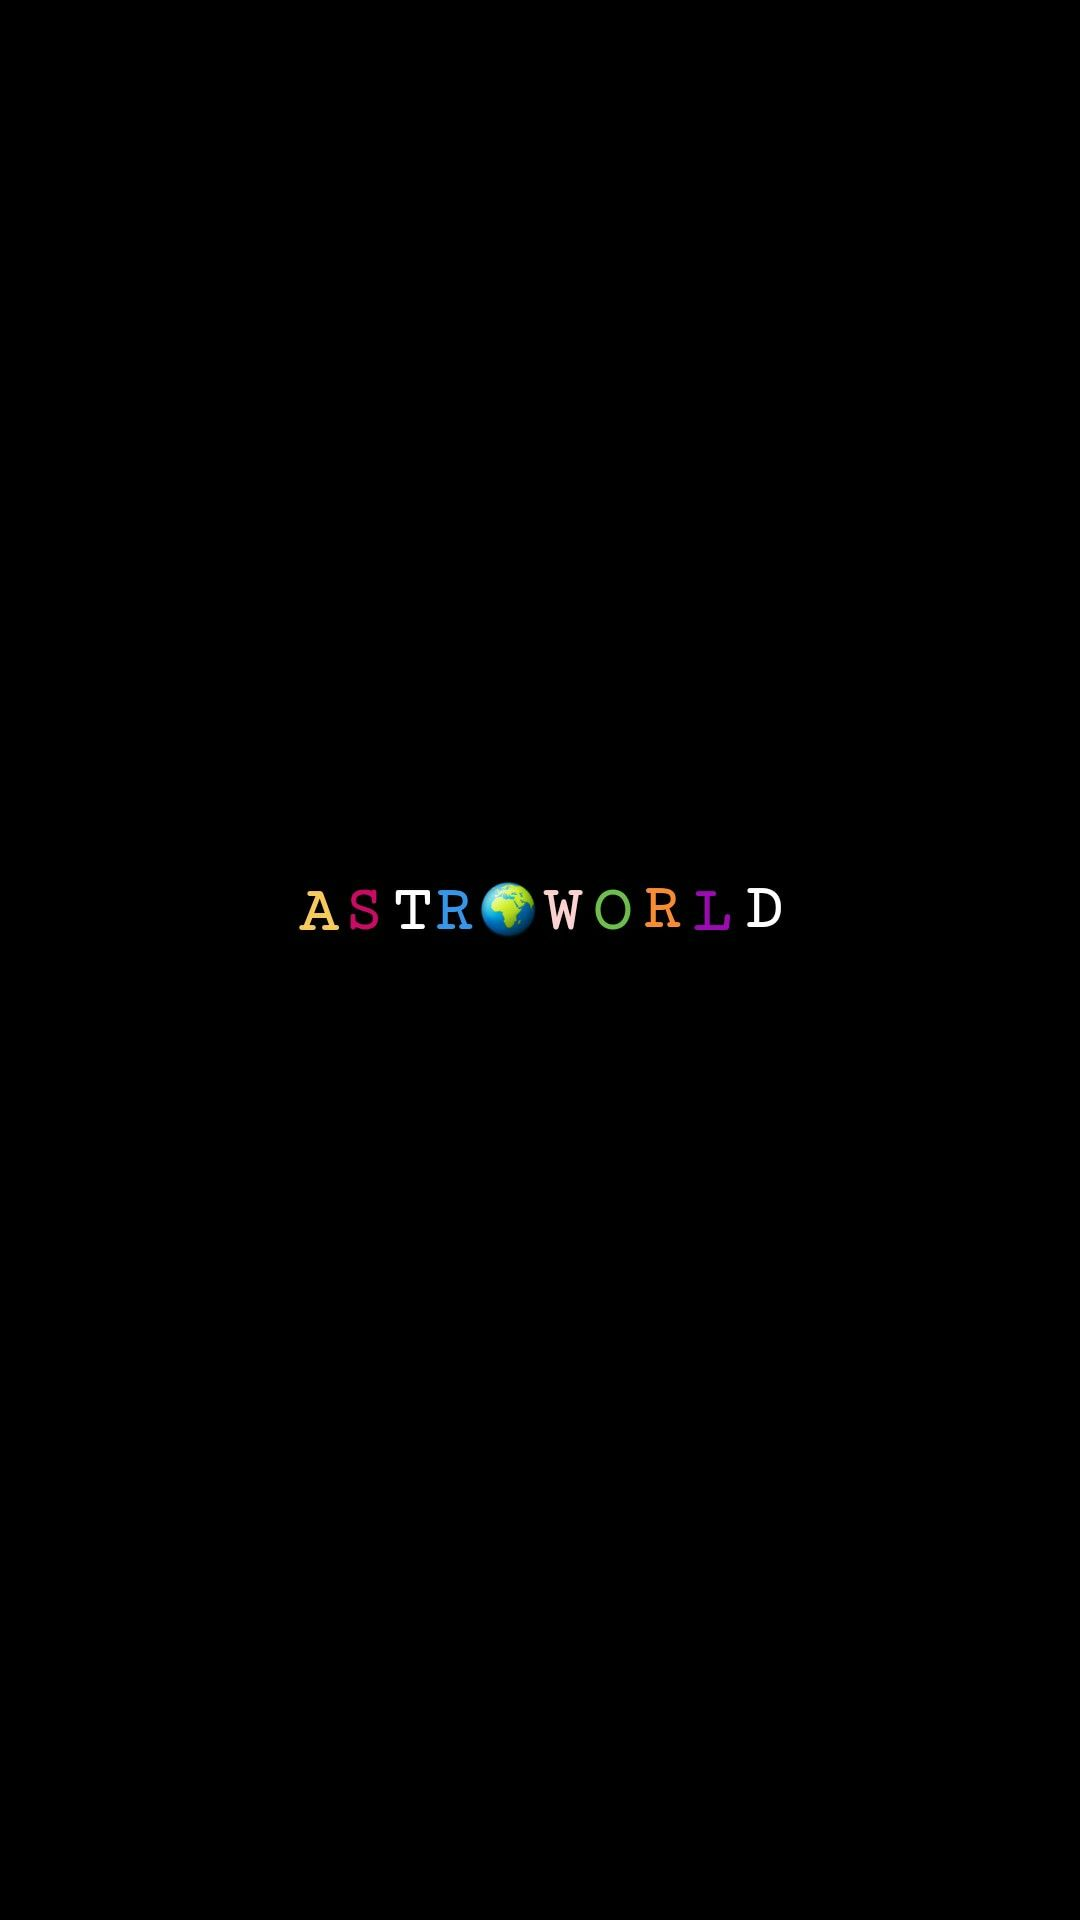 Astroworld Travis Scott Hypebeast Wallpaper Travis Scott Iphone Wallpaper Hype Wallpaper